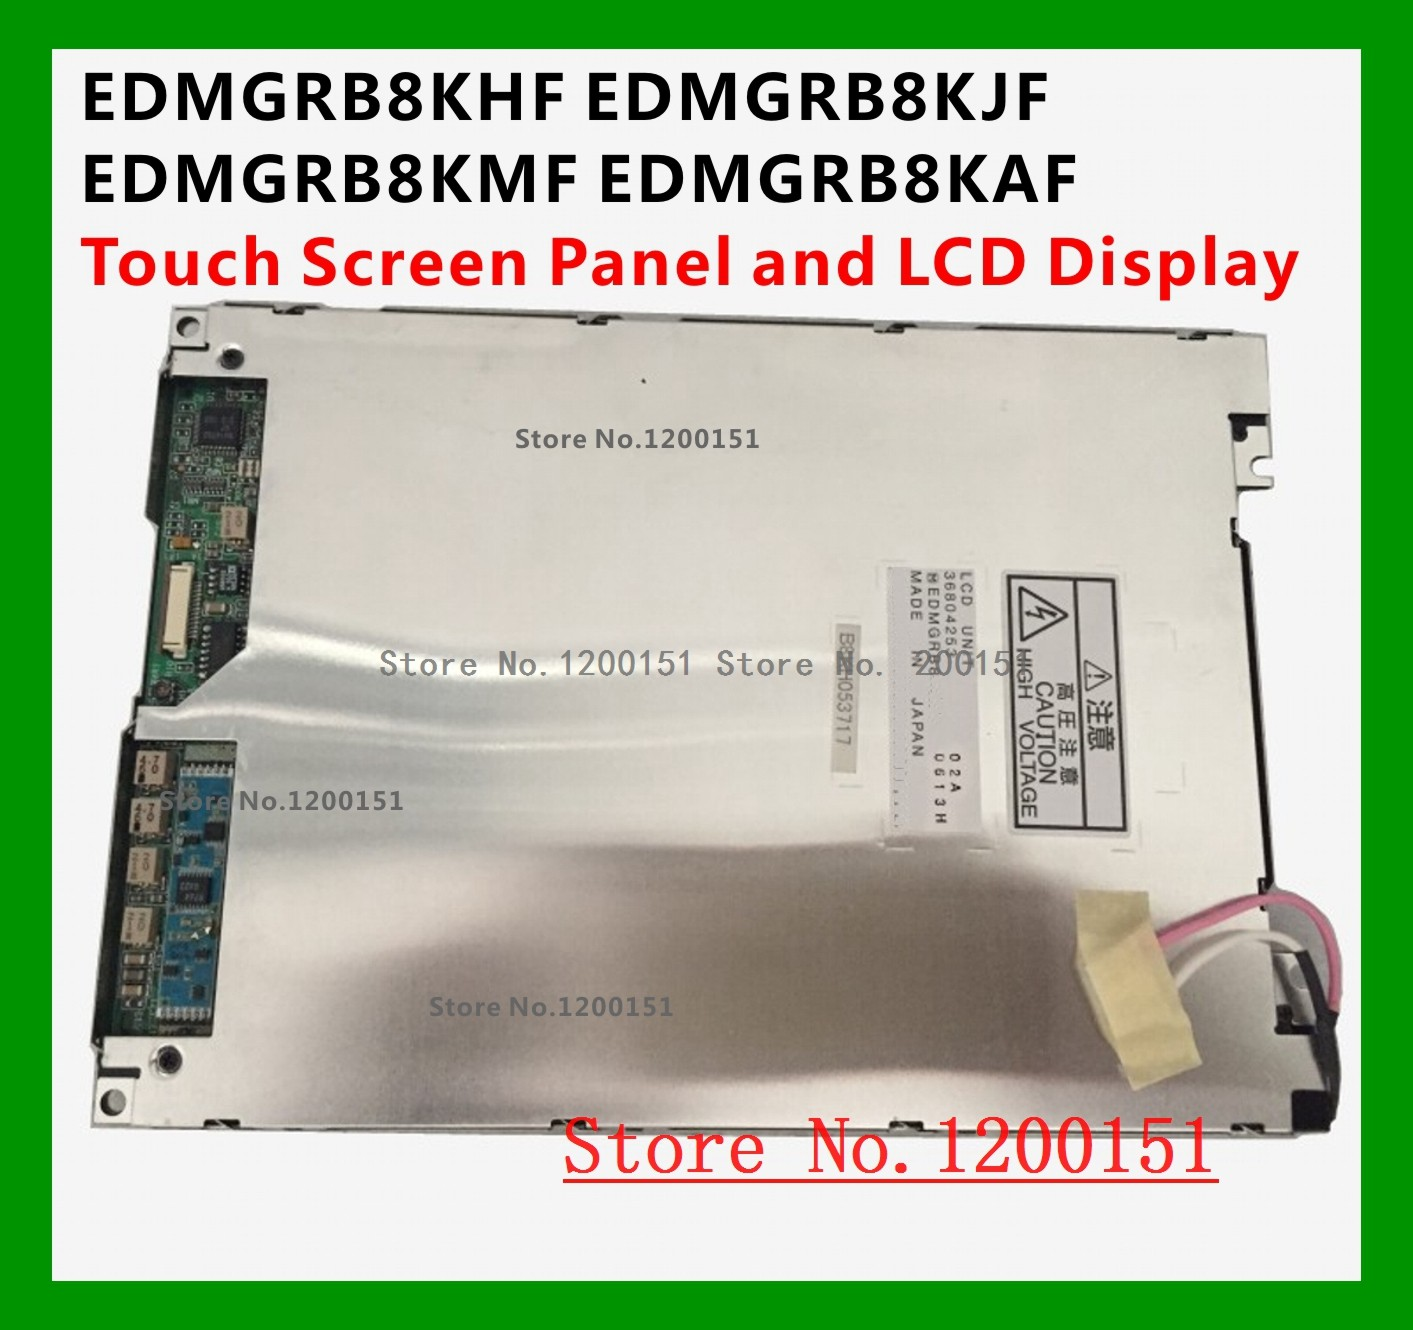 EDMGRB8KHF EDMGRB8KJF EDMGRB8KMF EDMGRB8KAF Touch Screen Panel and LCD Display